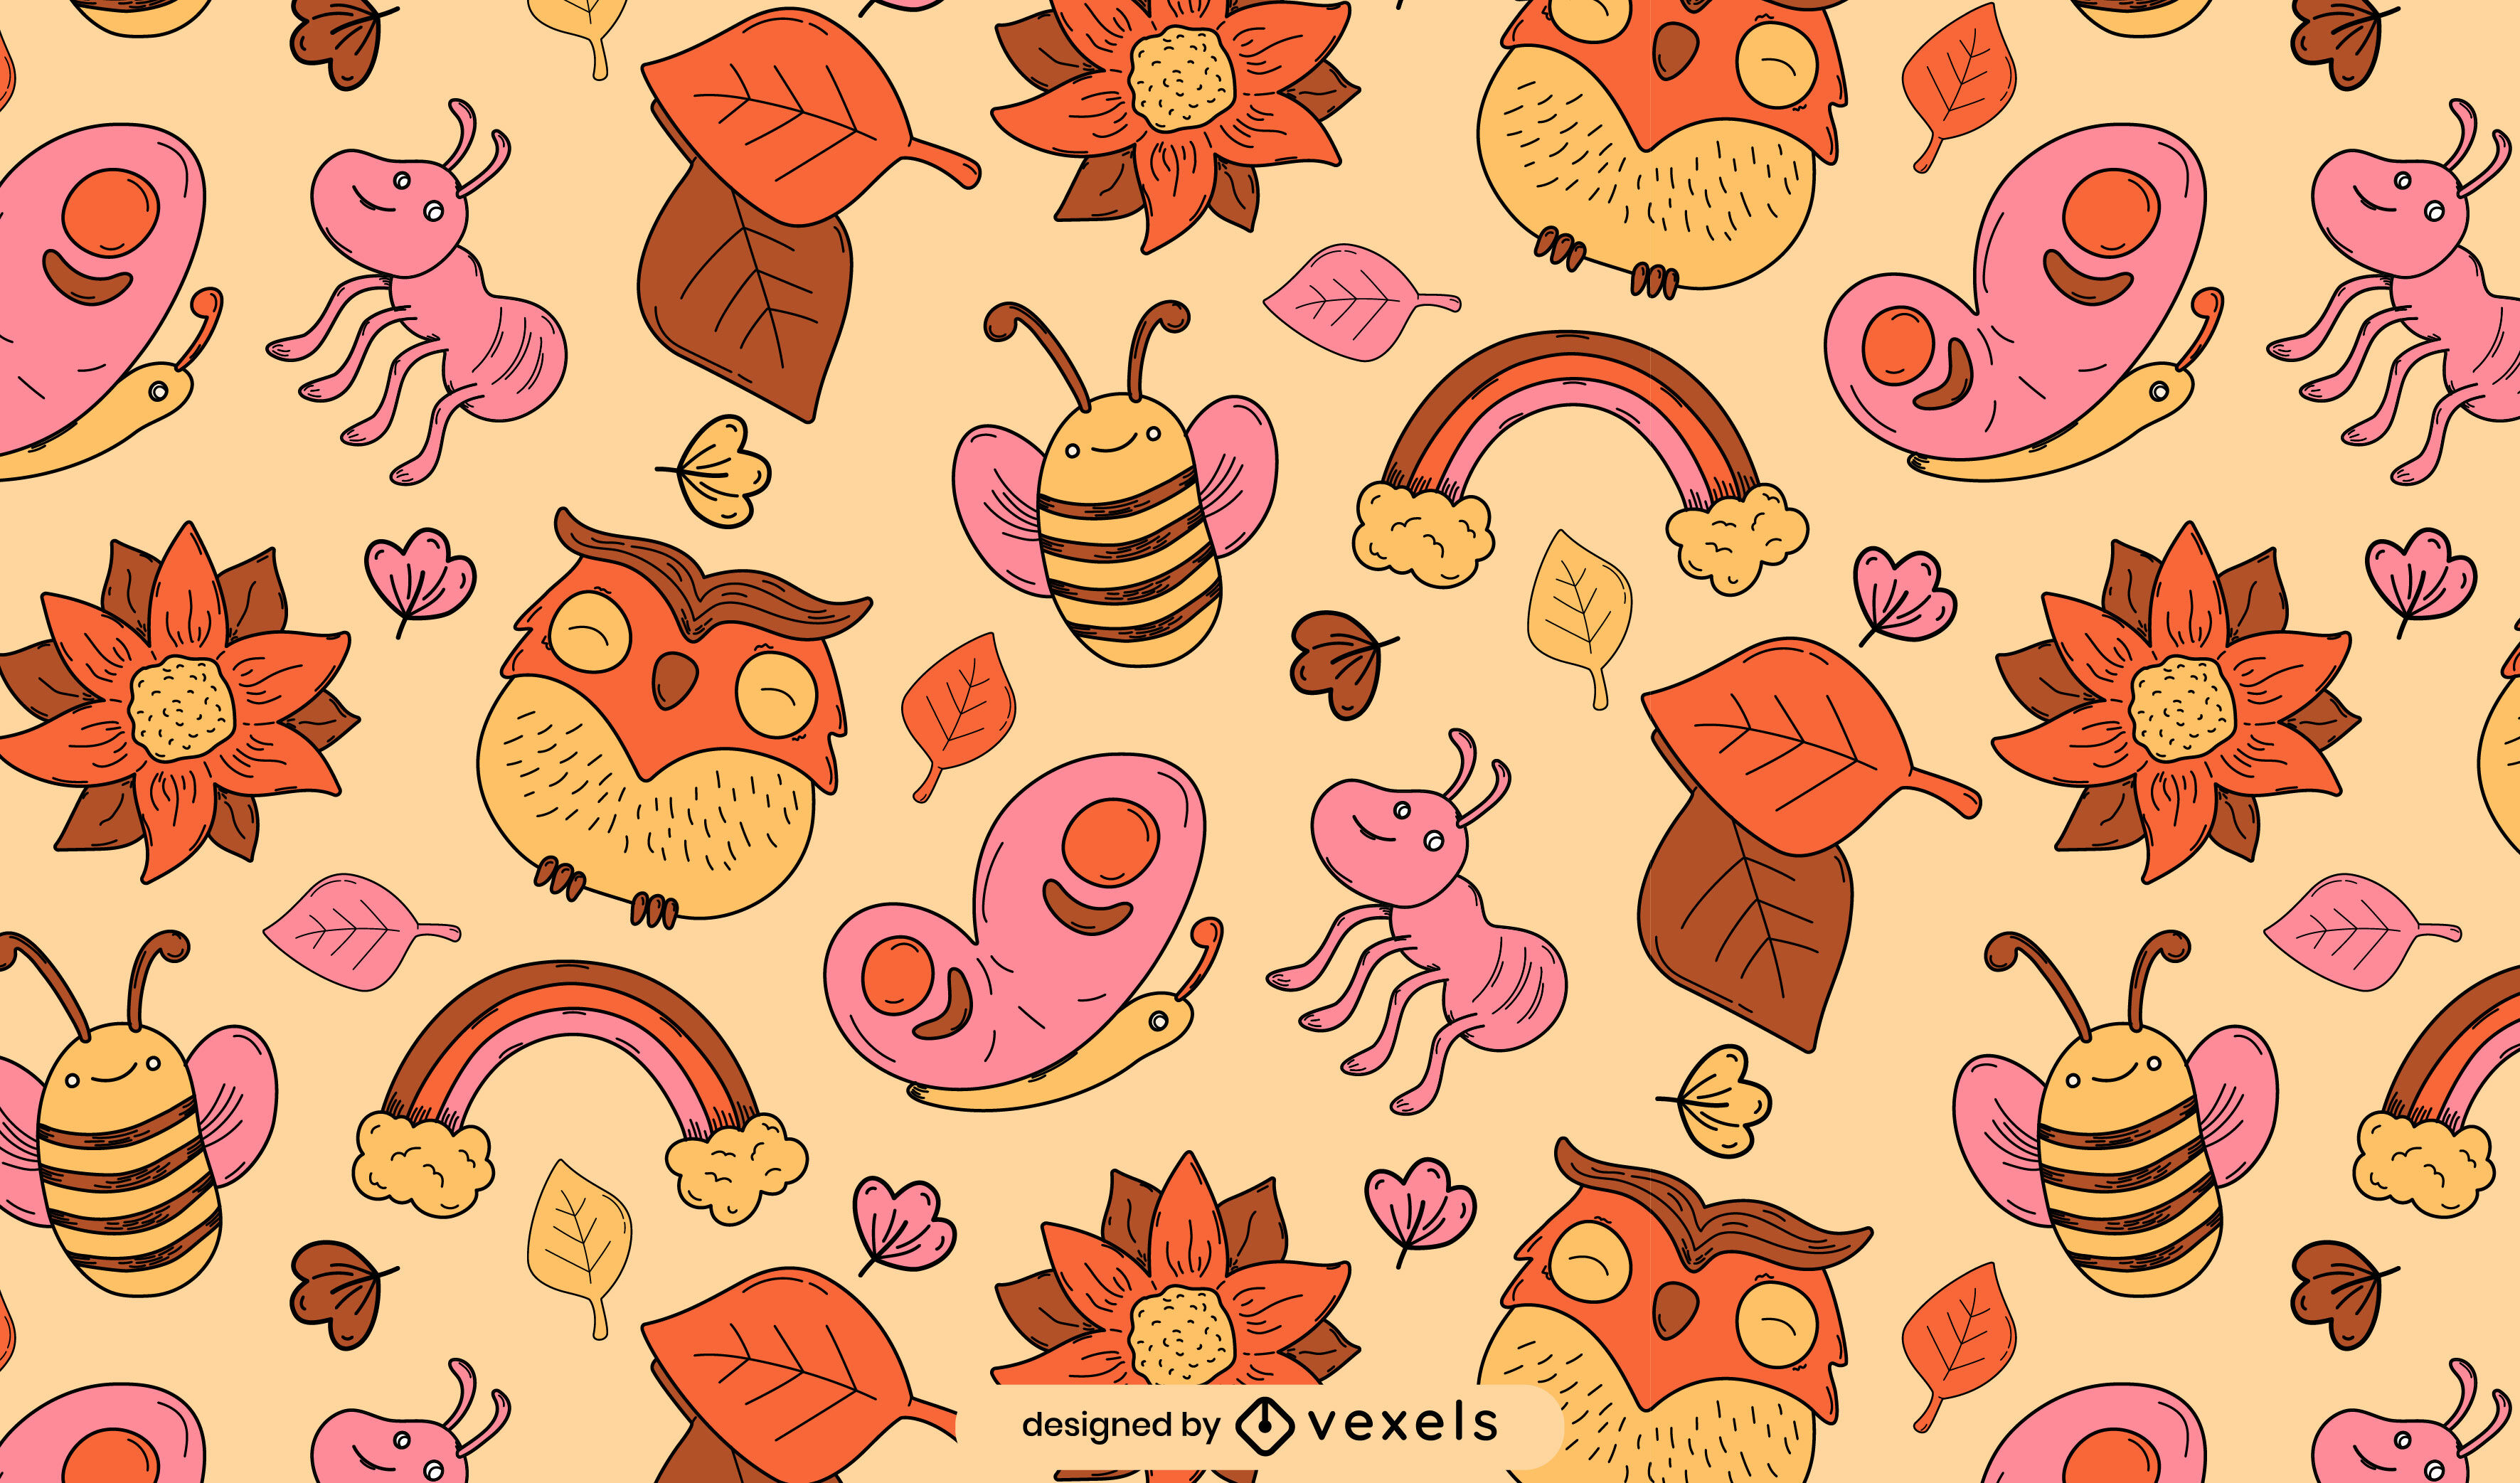 Cute insects and nature elements pattern design